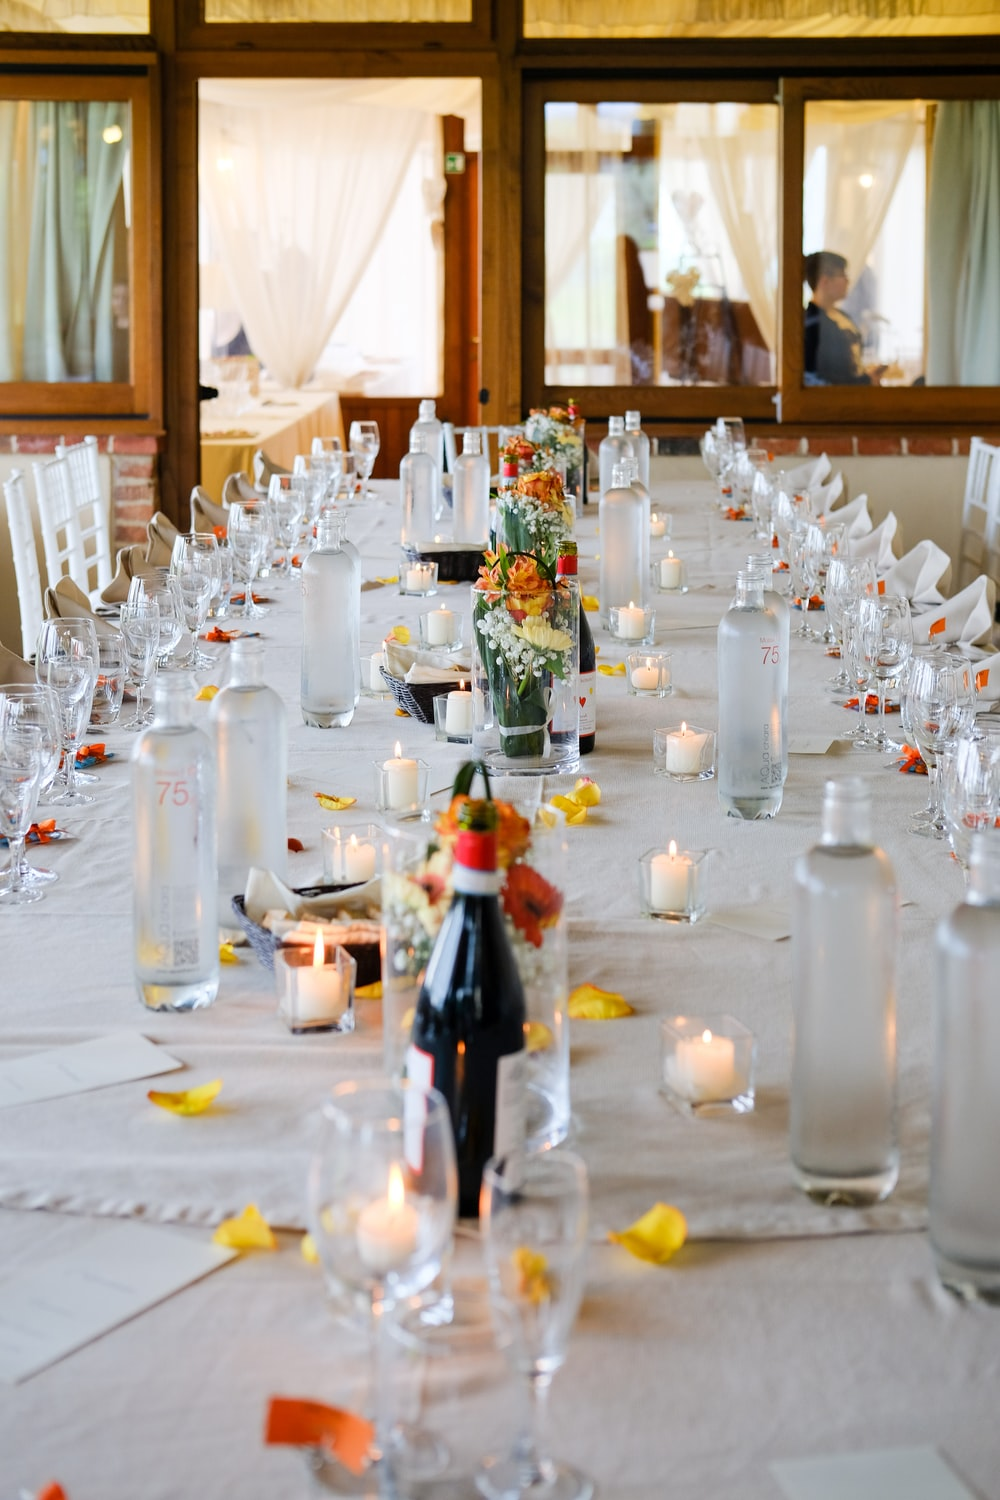 close-up photography of table setting